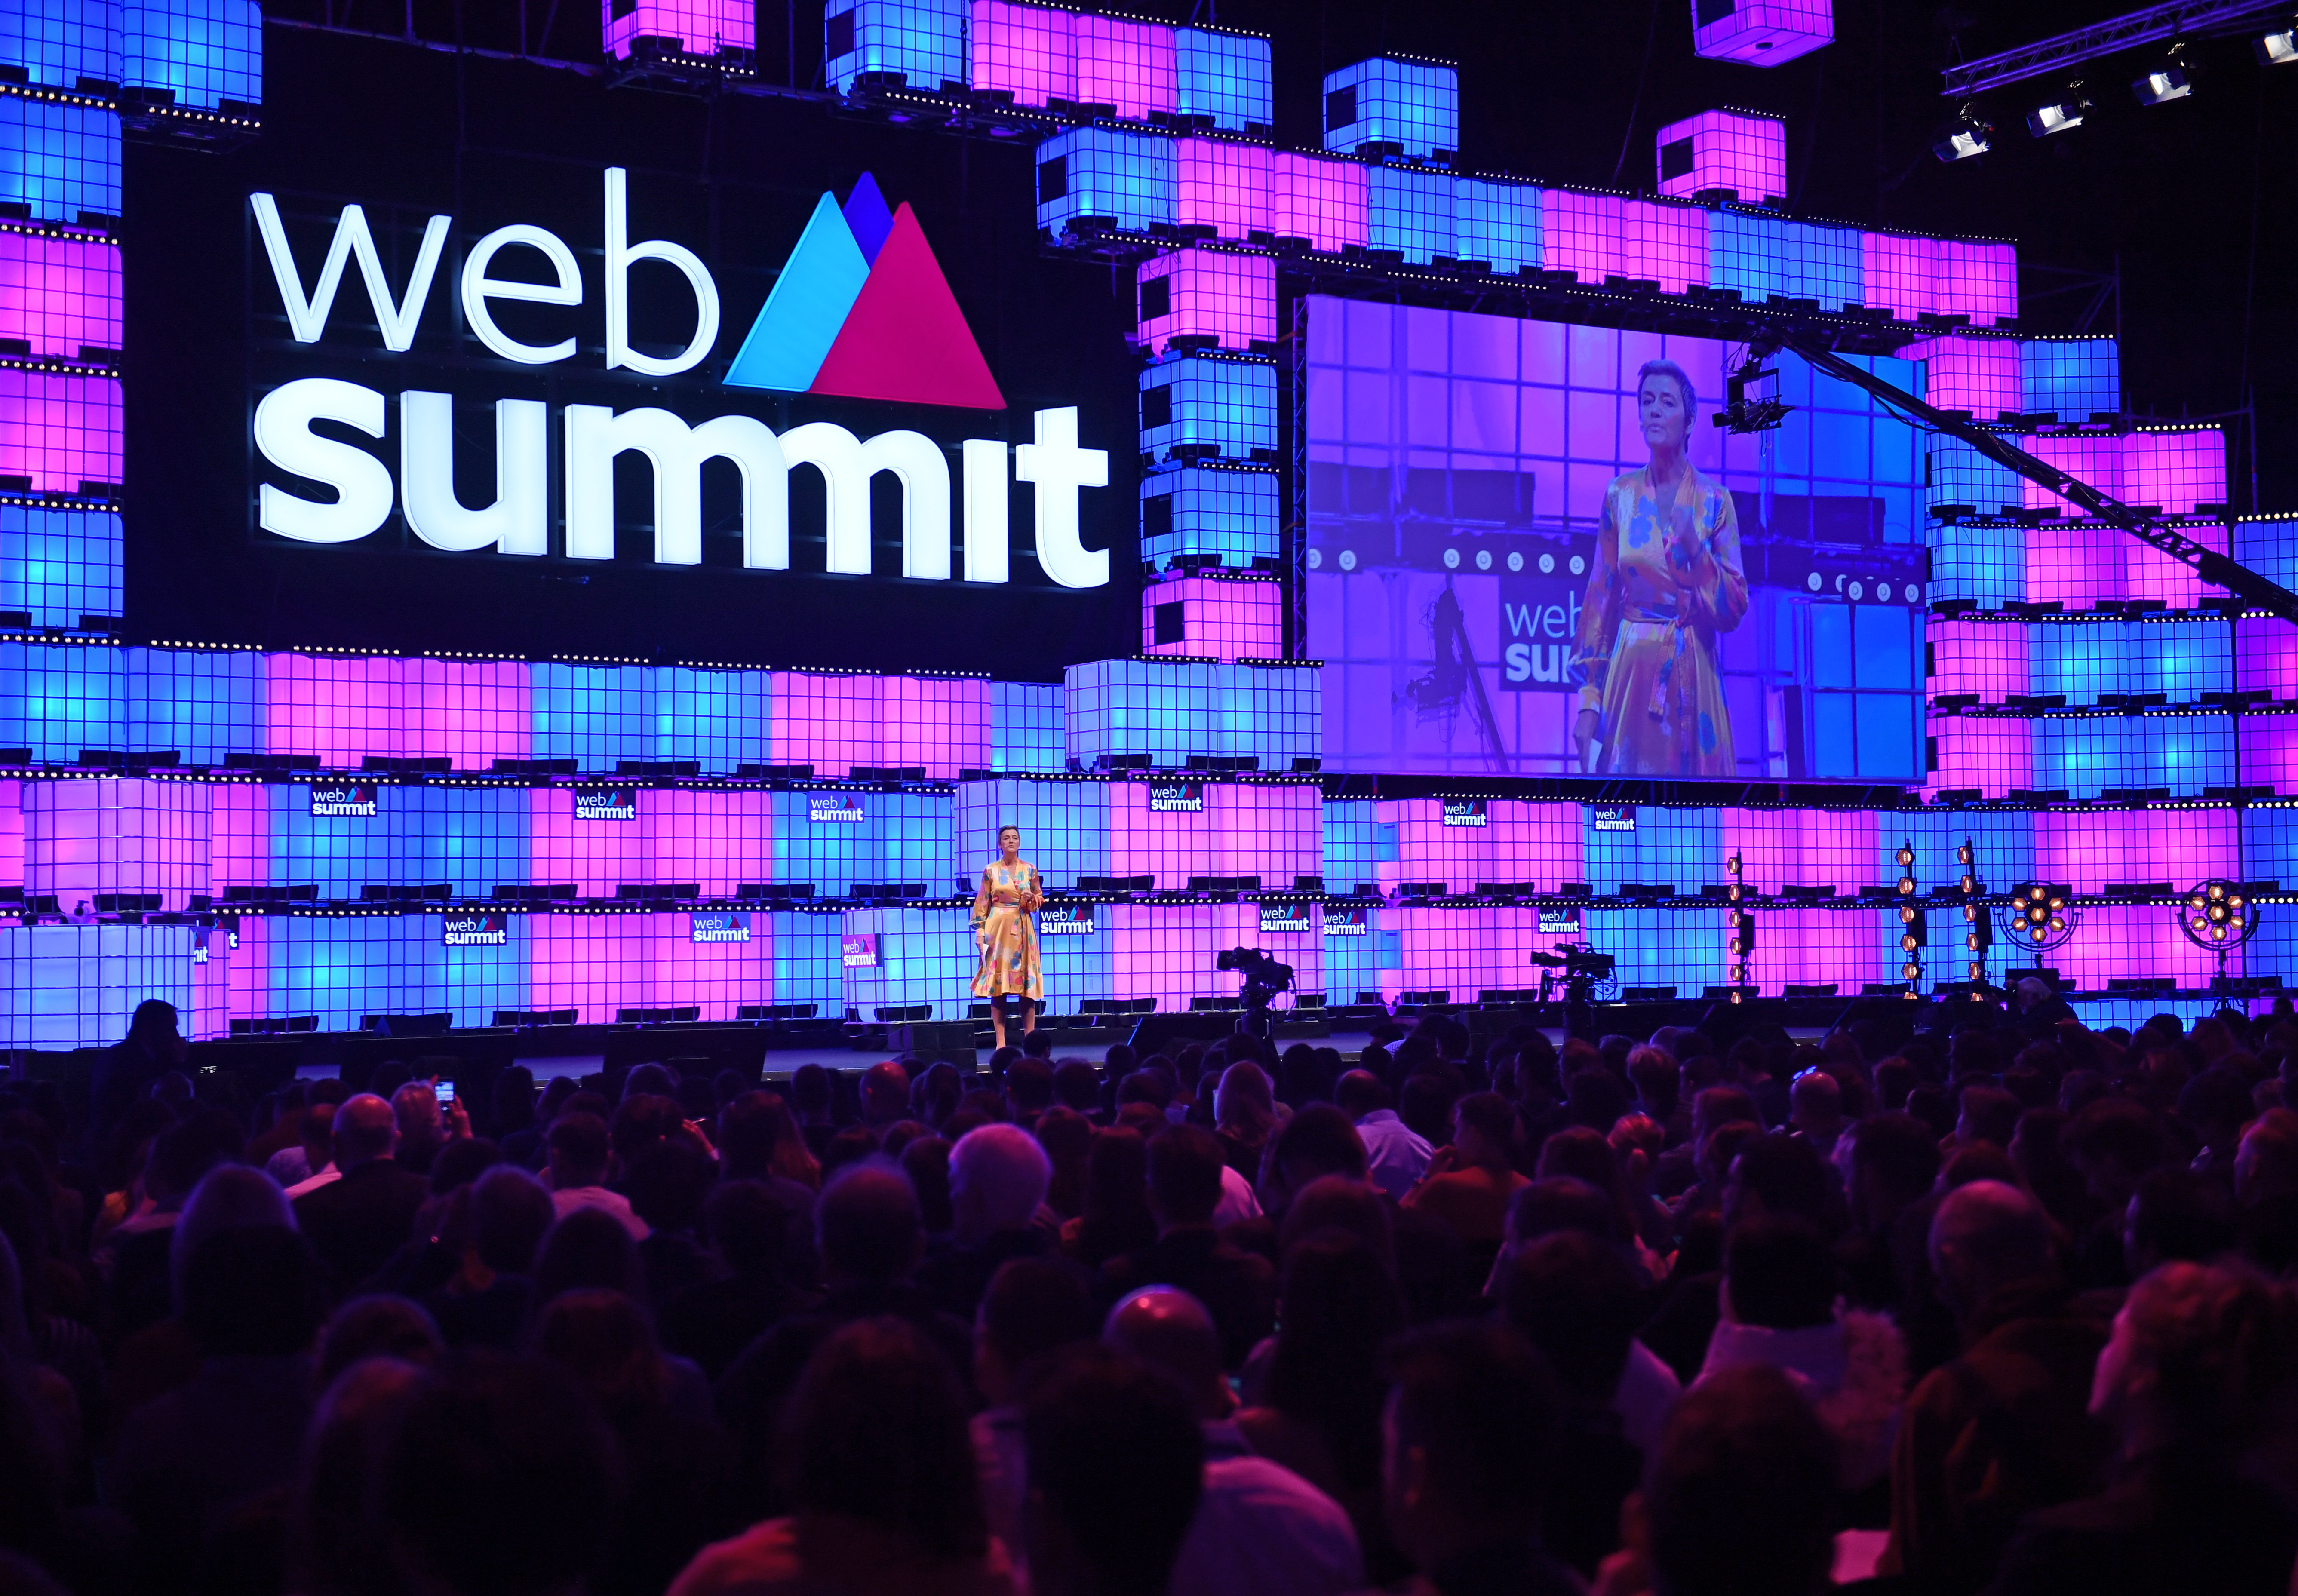 Web Summit Officially Sells Out and Expects Over 70,000 Attendees